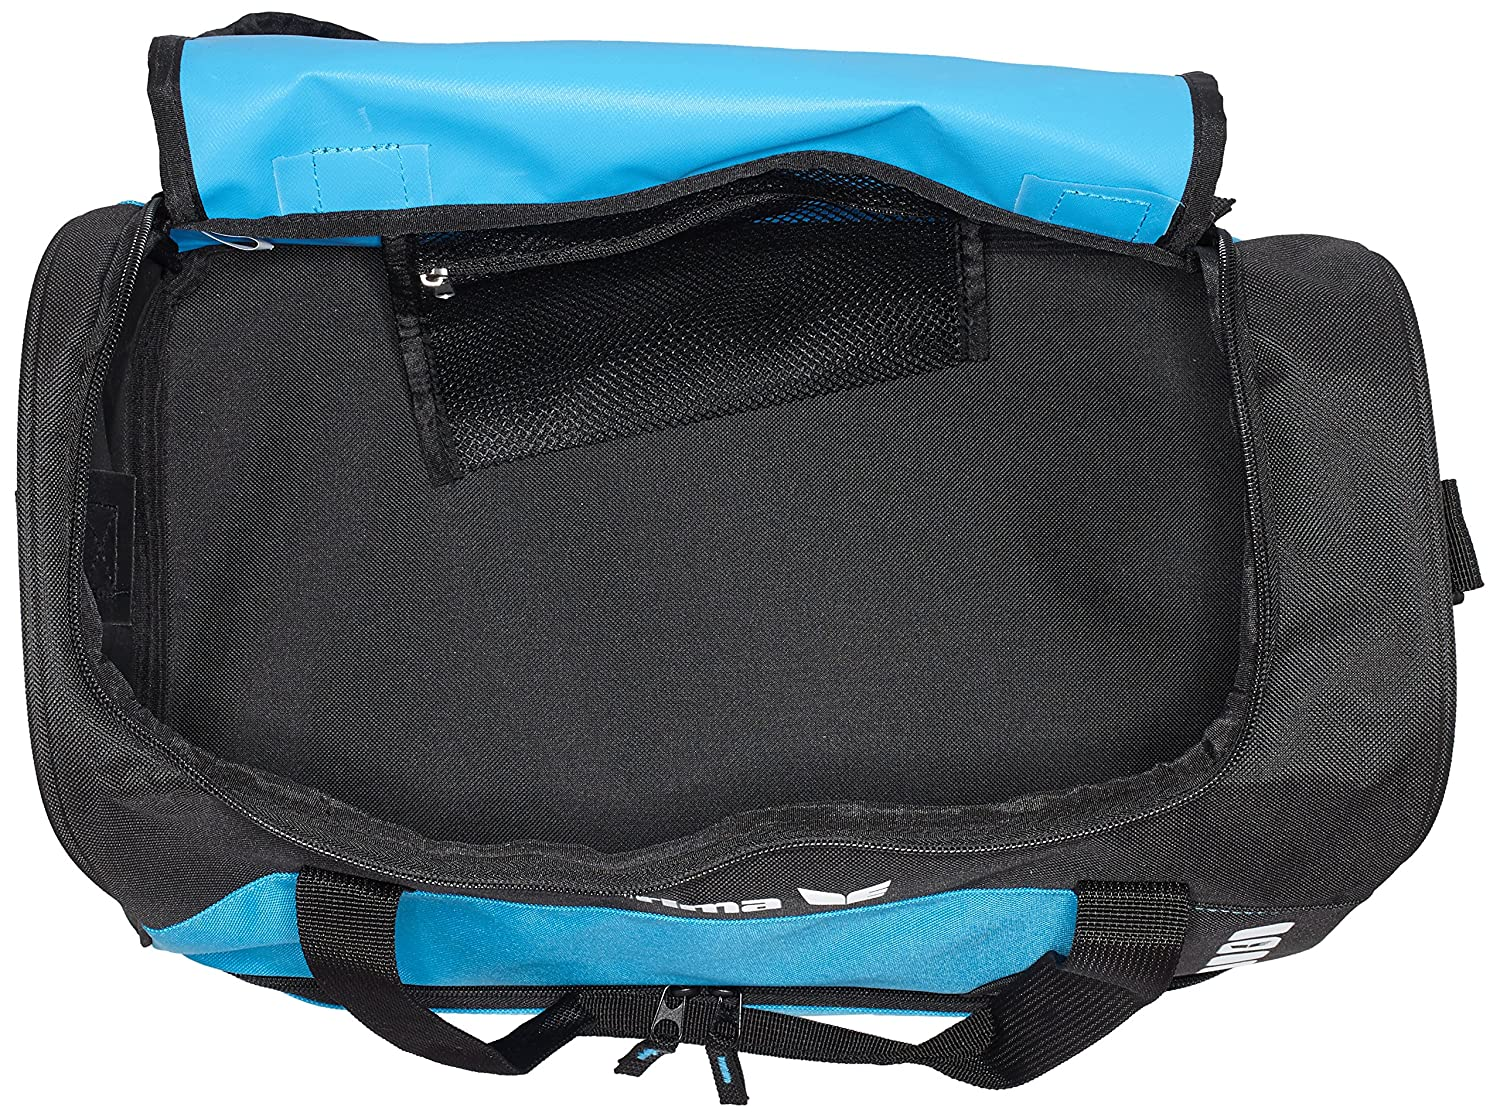 868a608b32 Erima Sports Bag with Bottom Compartment Small 723364  1540979857 ...